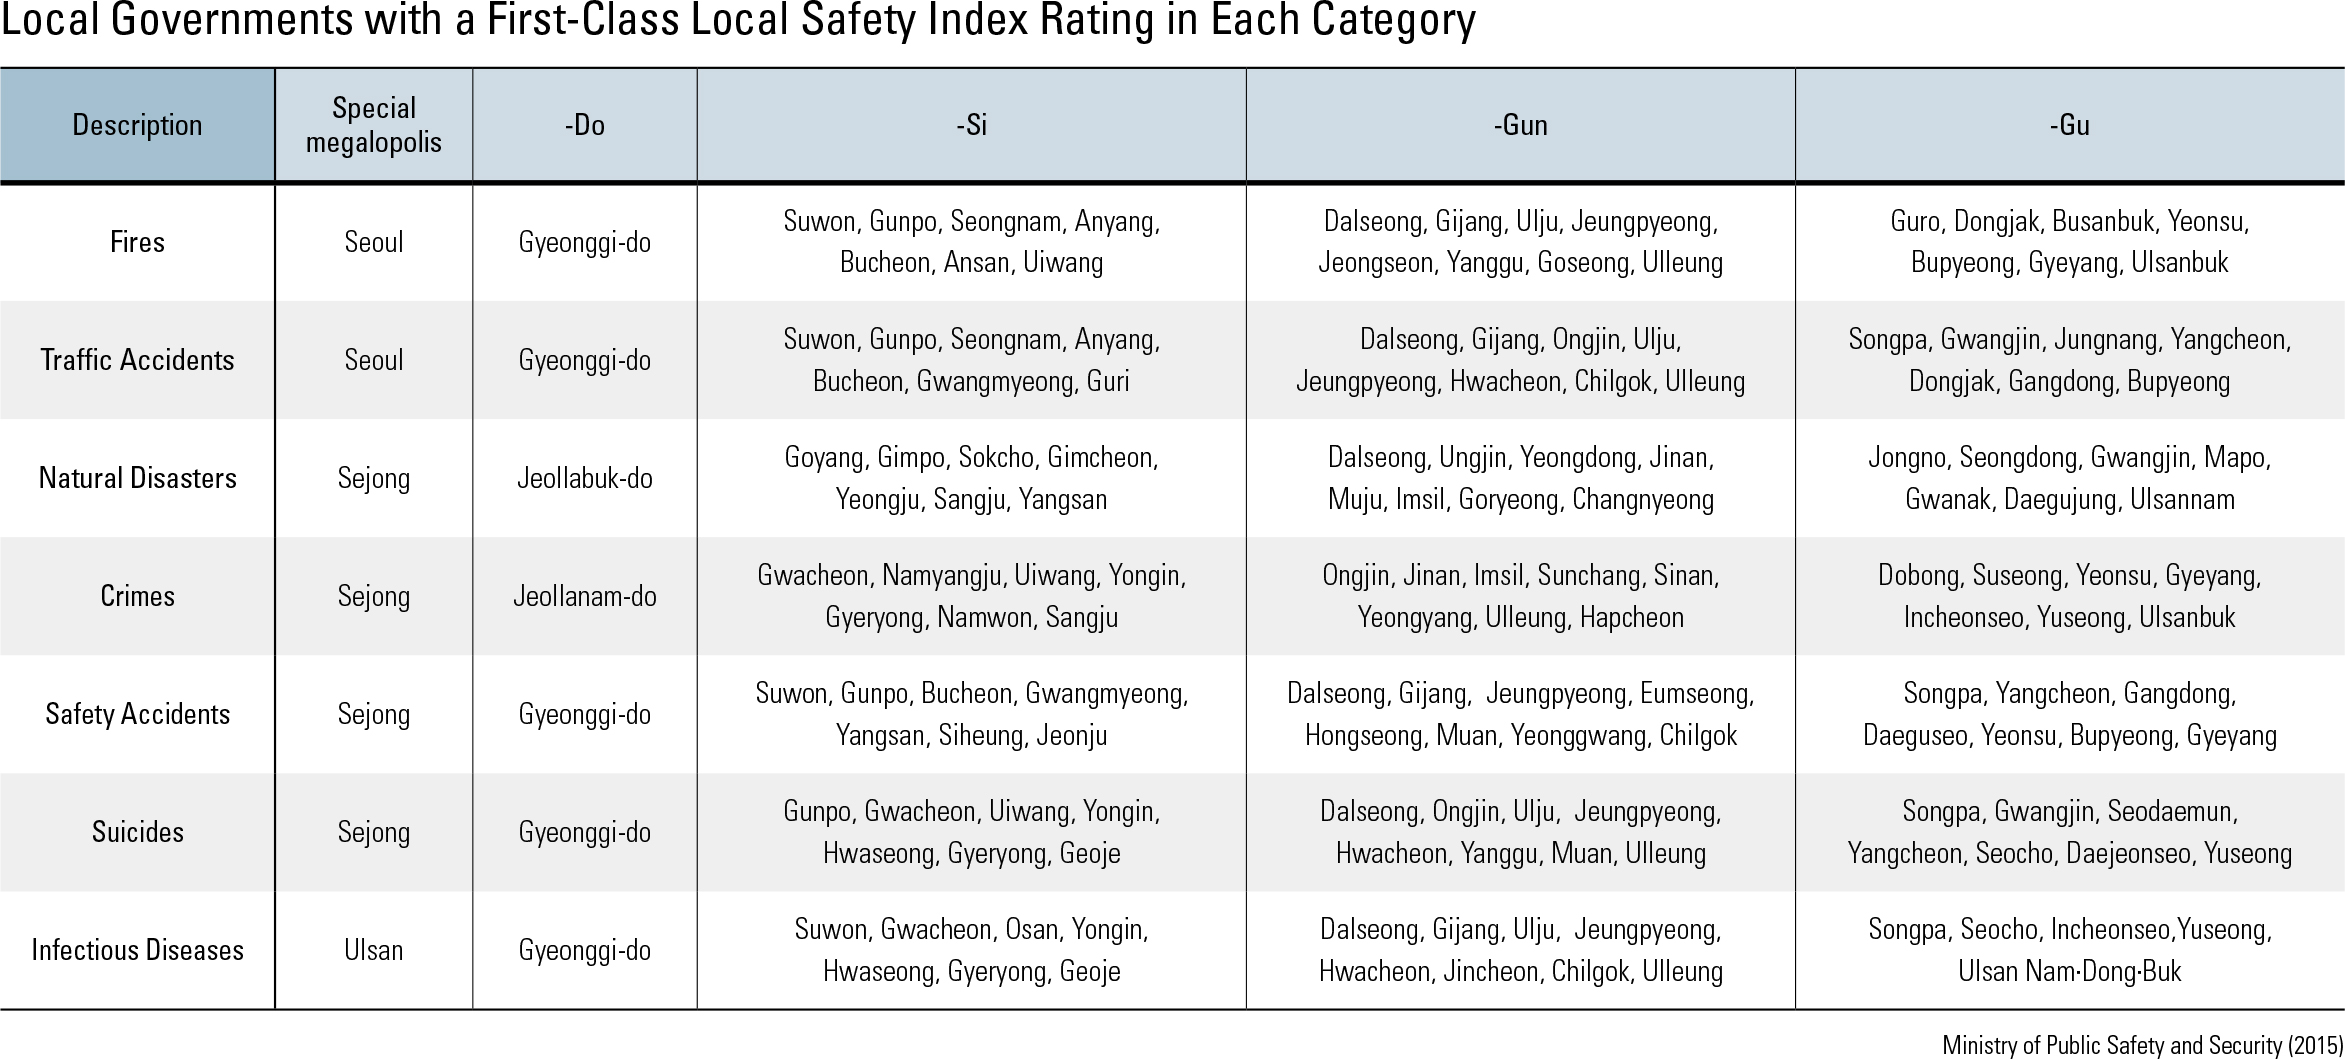 Local Governments with a First-Class Local Safety Index Rating in Each Category